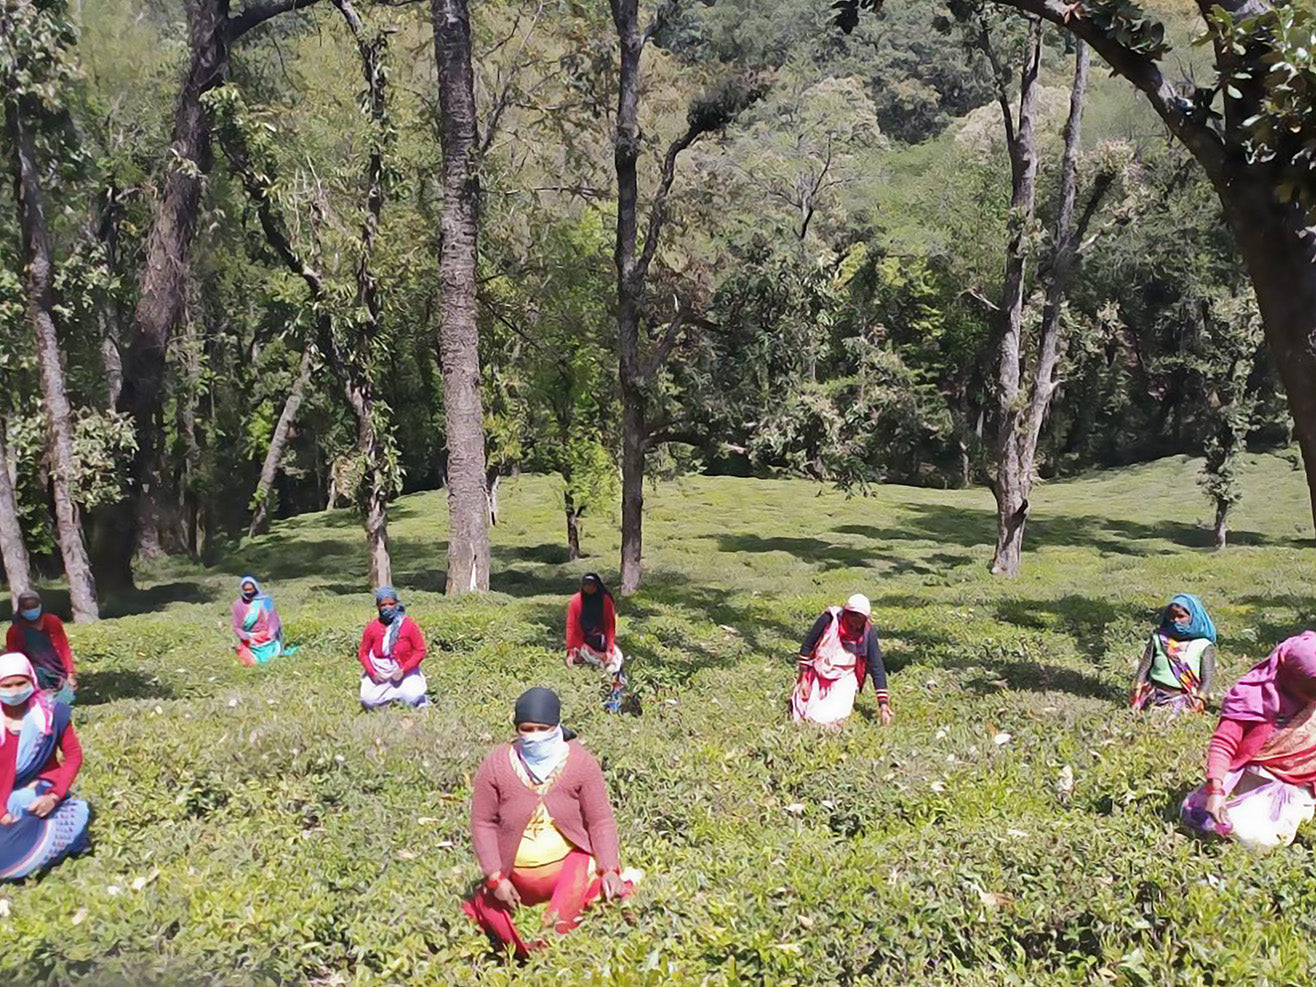 Kumaon tea pluckers in field wearing masks